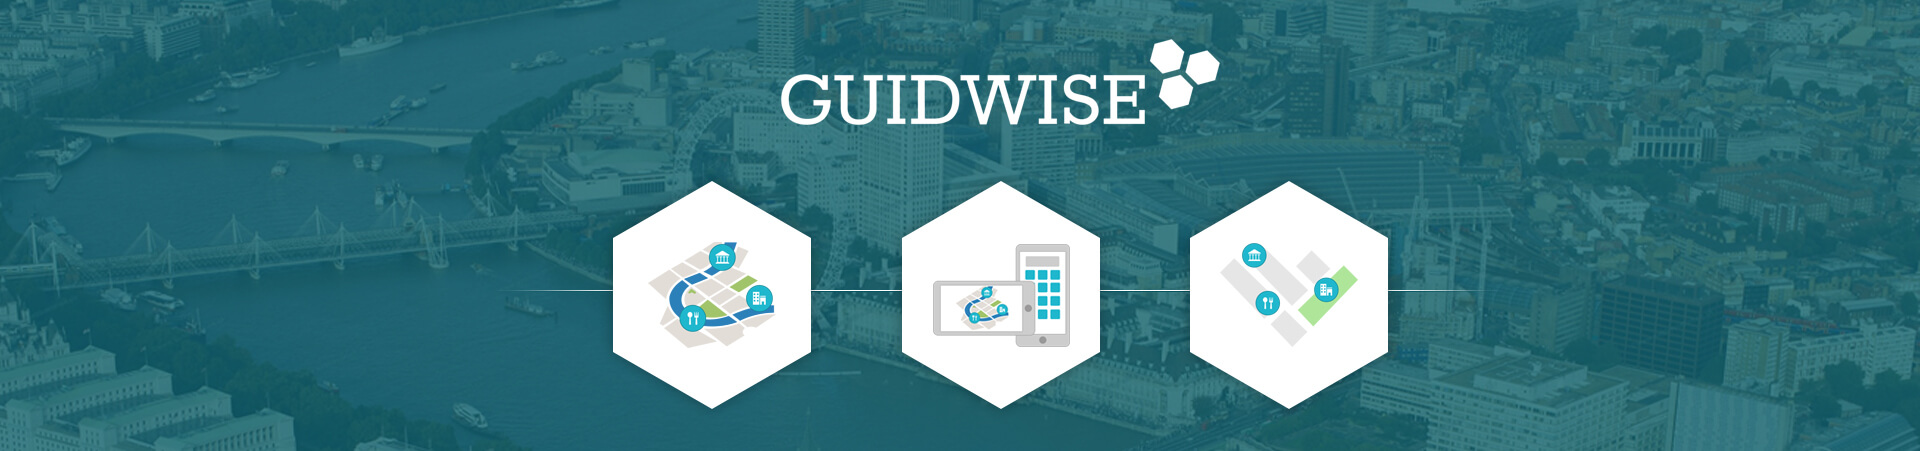 guidwise